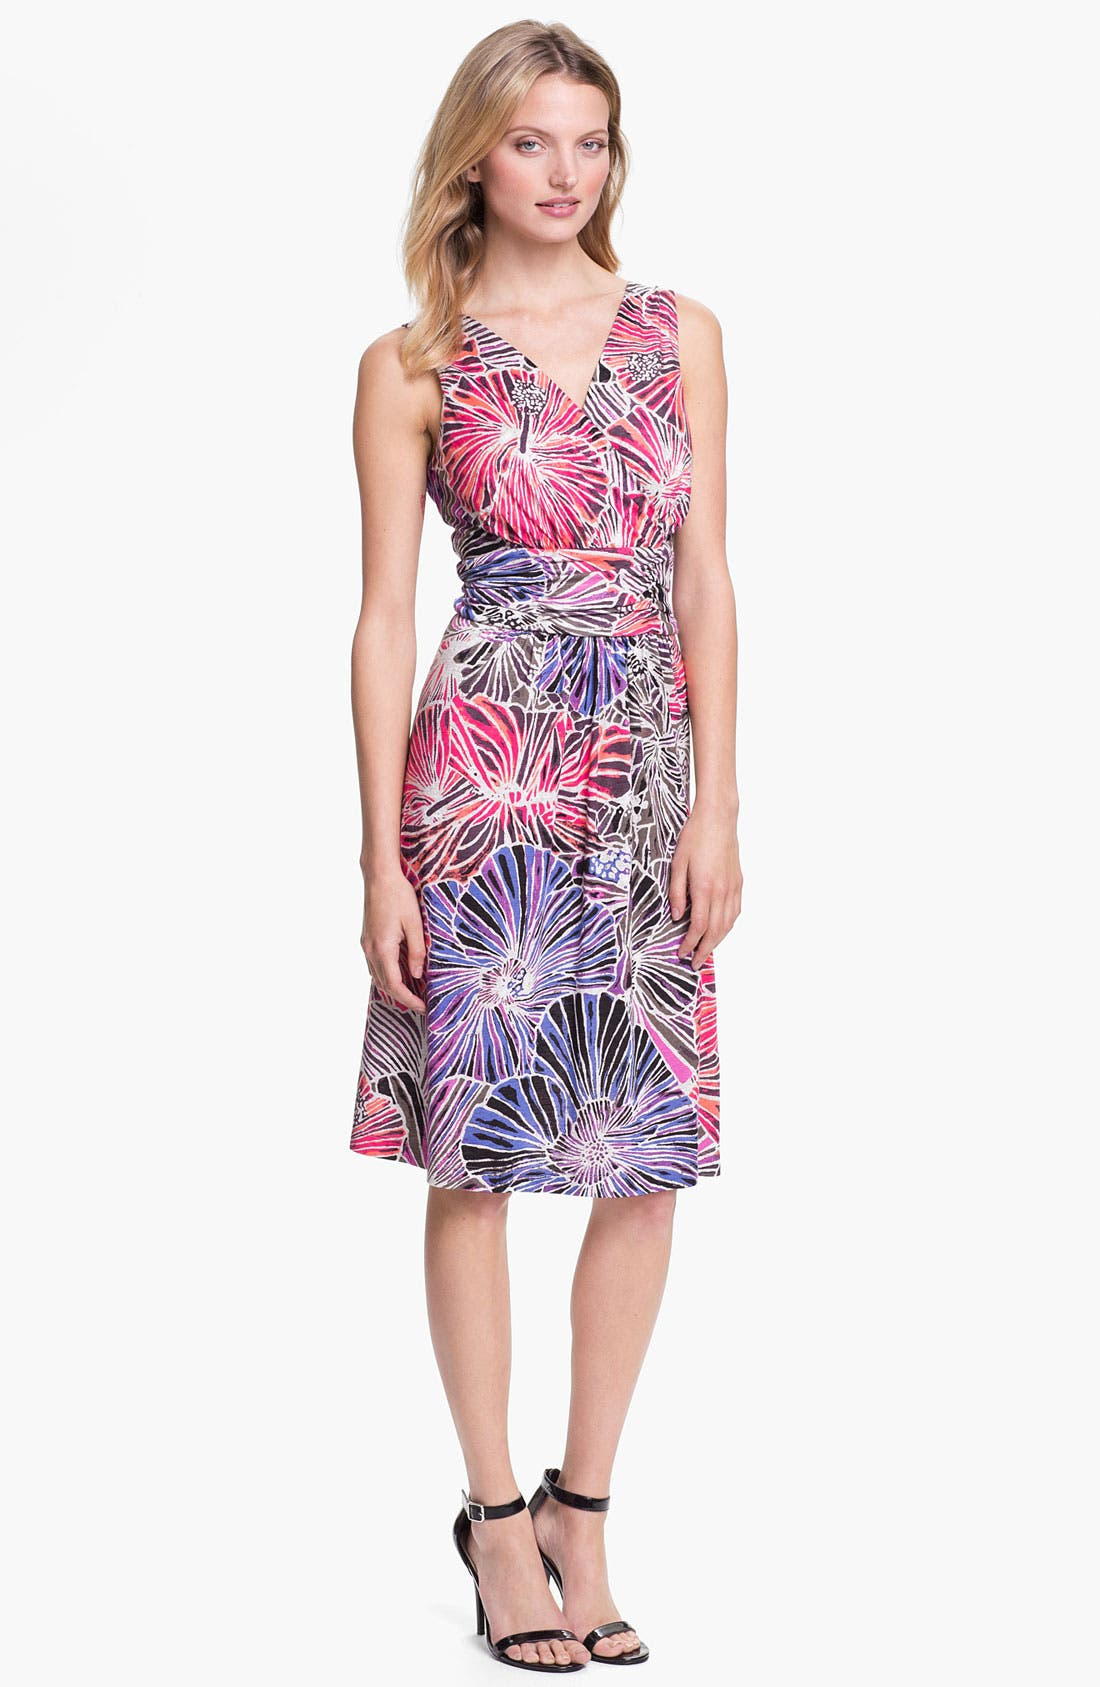 Alternate Image 1 Selected - Nic + Zoe Sleeveless Surplice V-Neck Print Dress